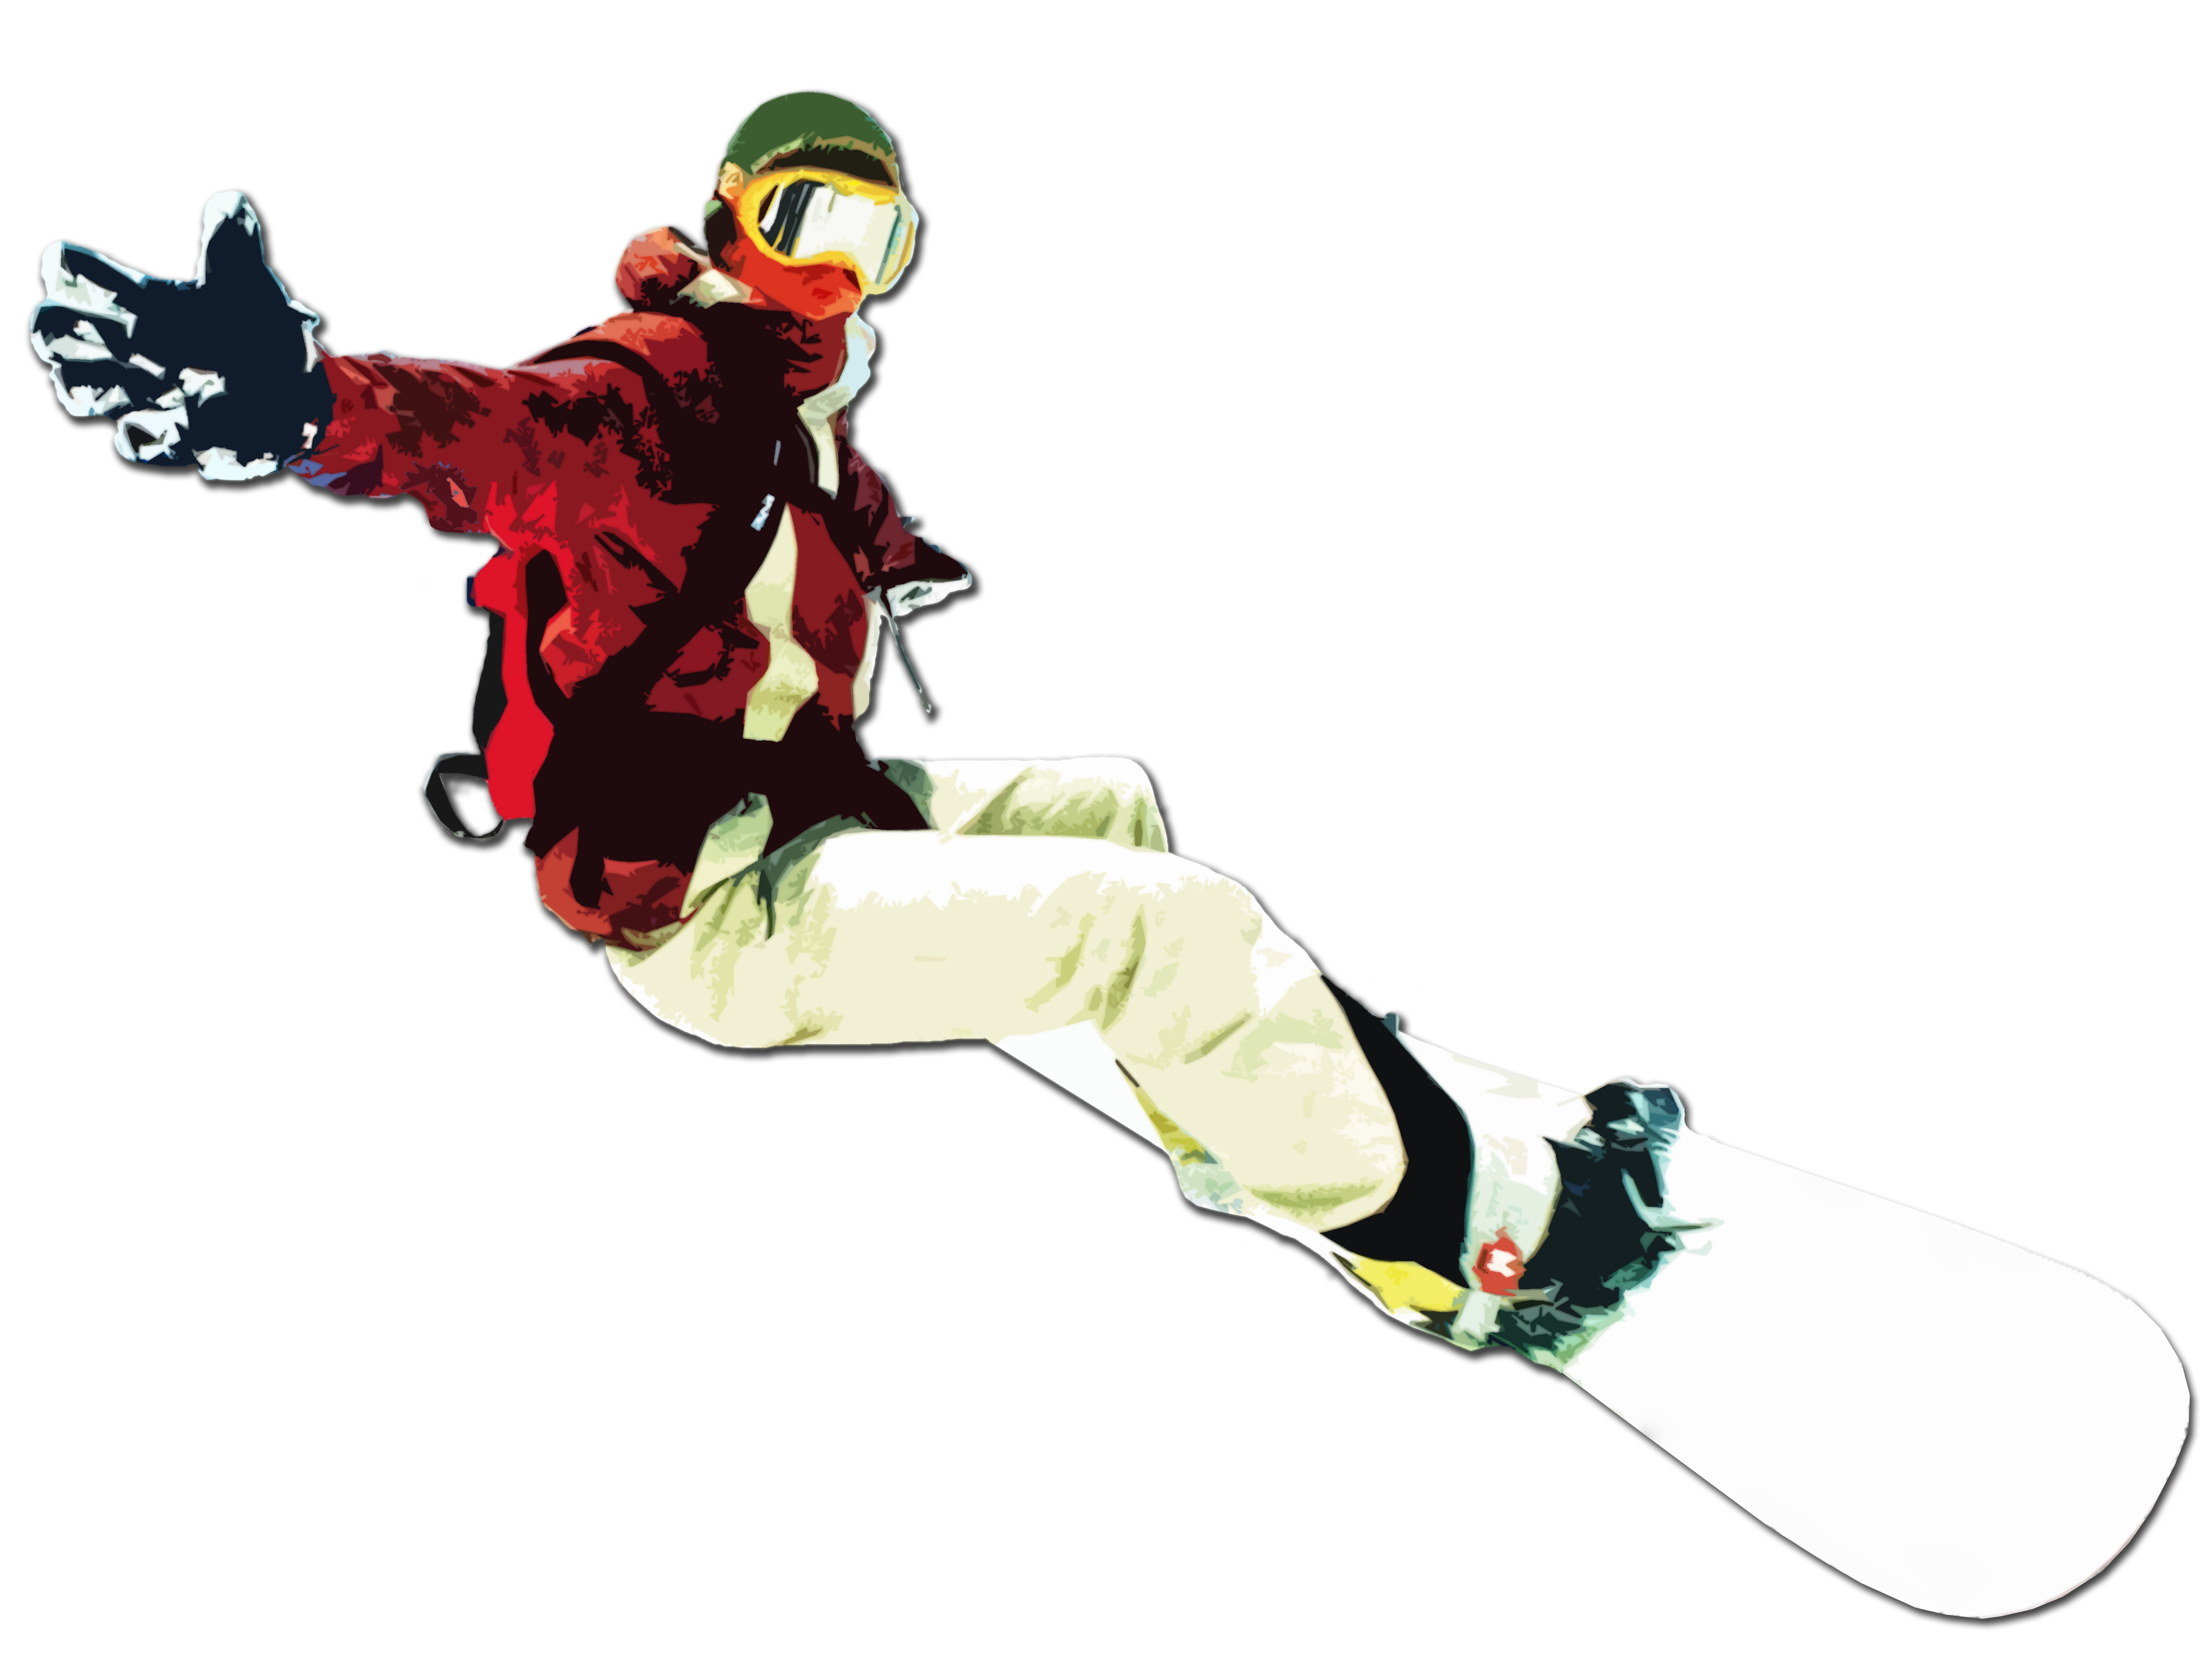 png 4800x3600 Snowboard transparent background - Snowboard PNG - Snowboarding HD PNG